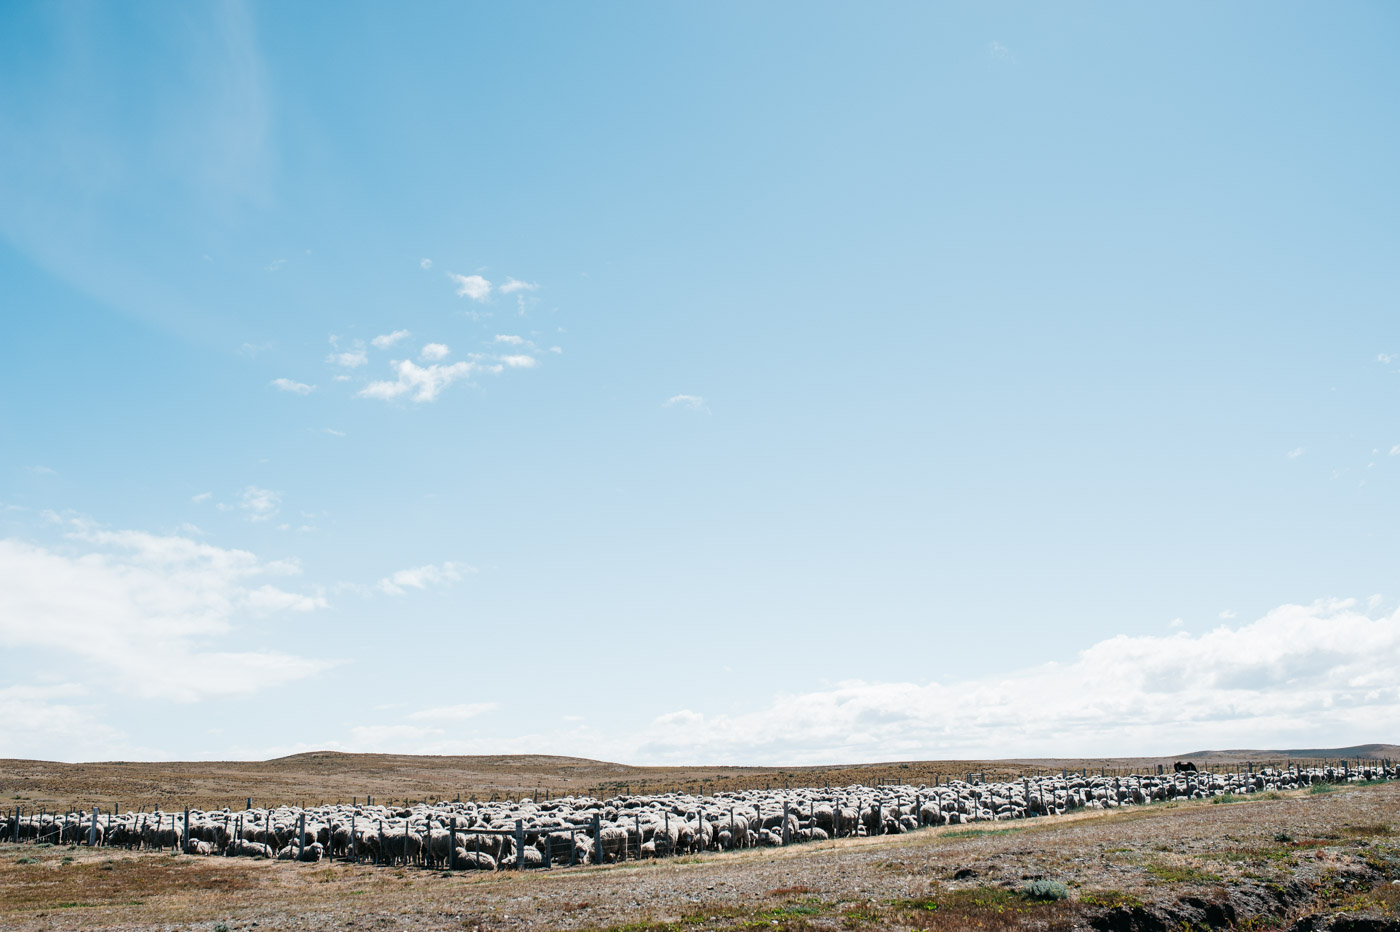 Impressions Driving Camping Patagonia Sheep in Tierra del Fuego